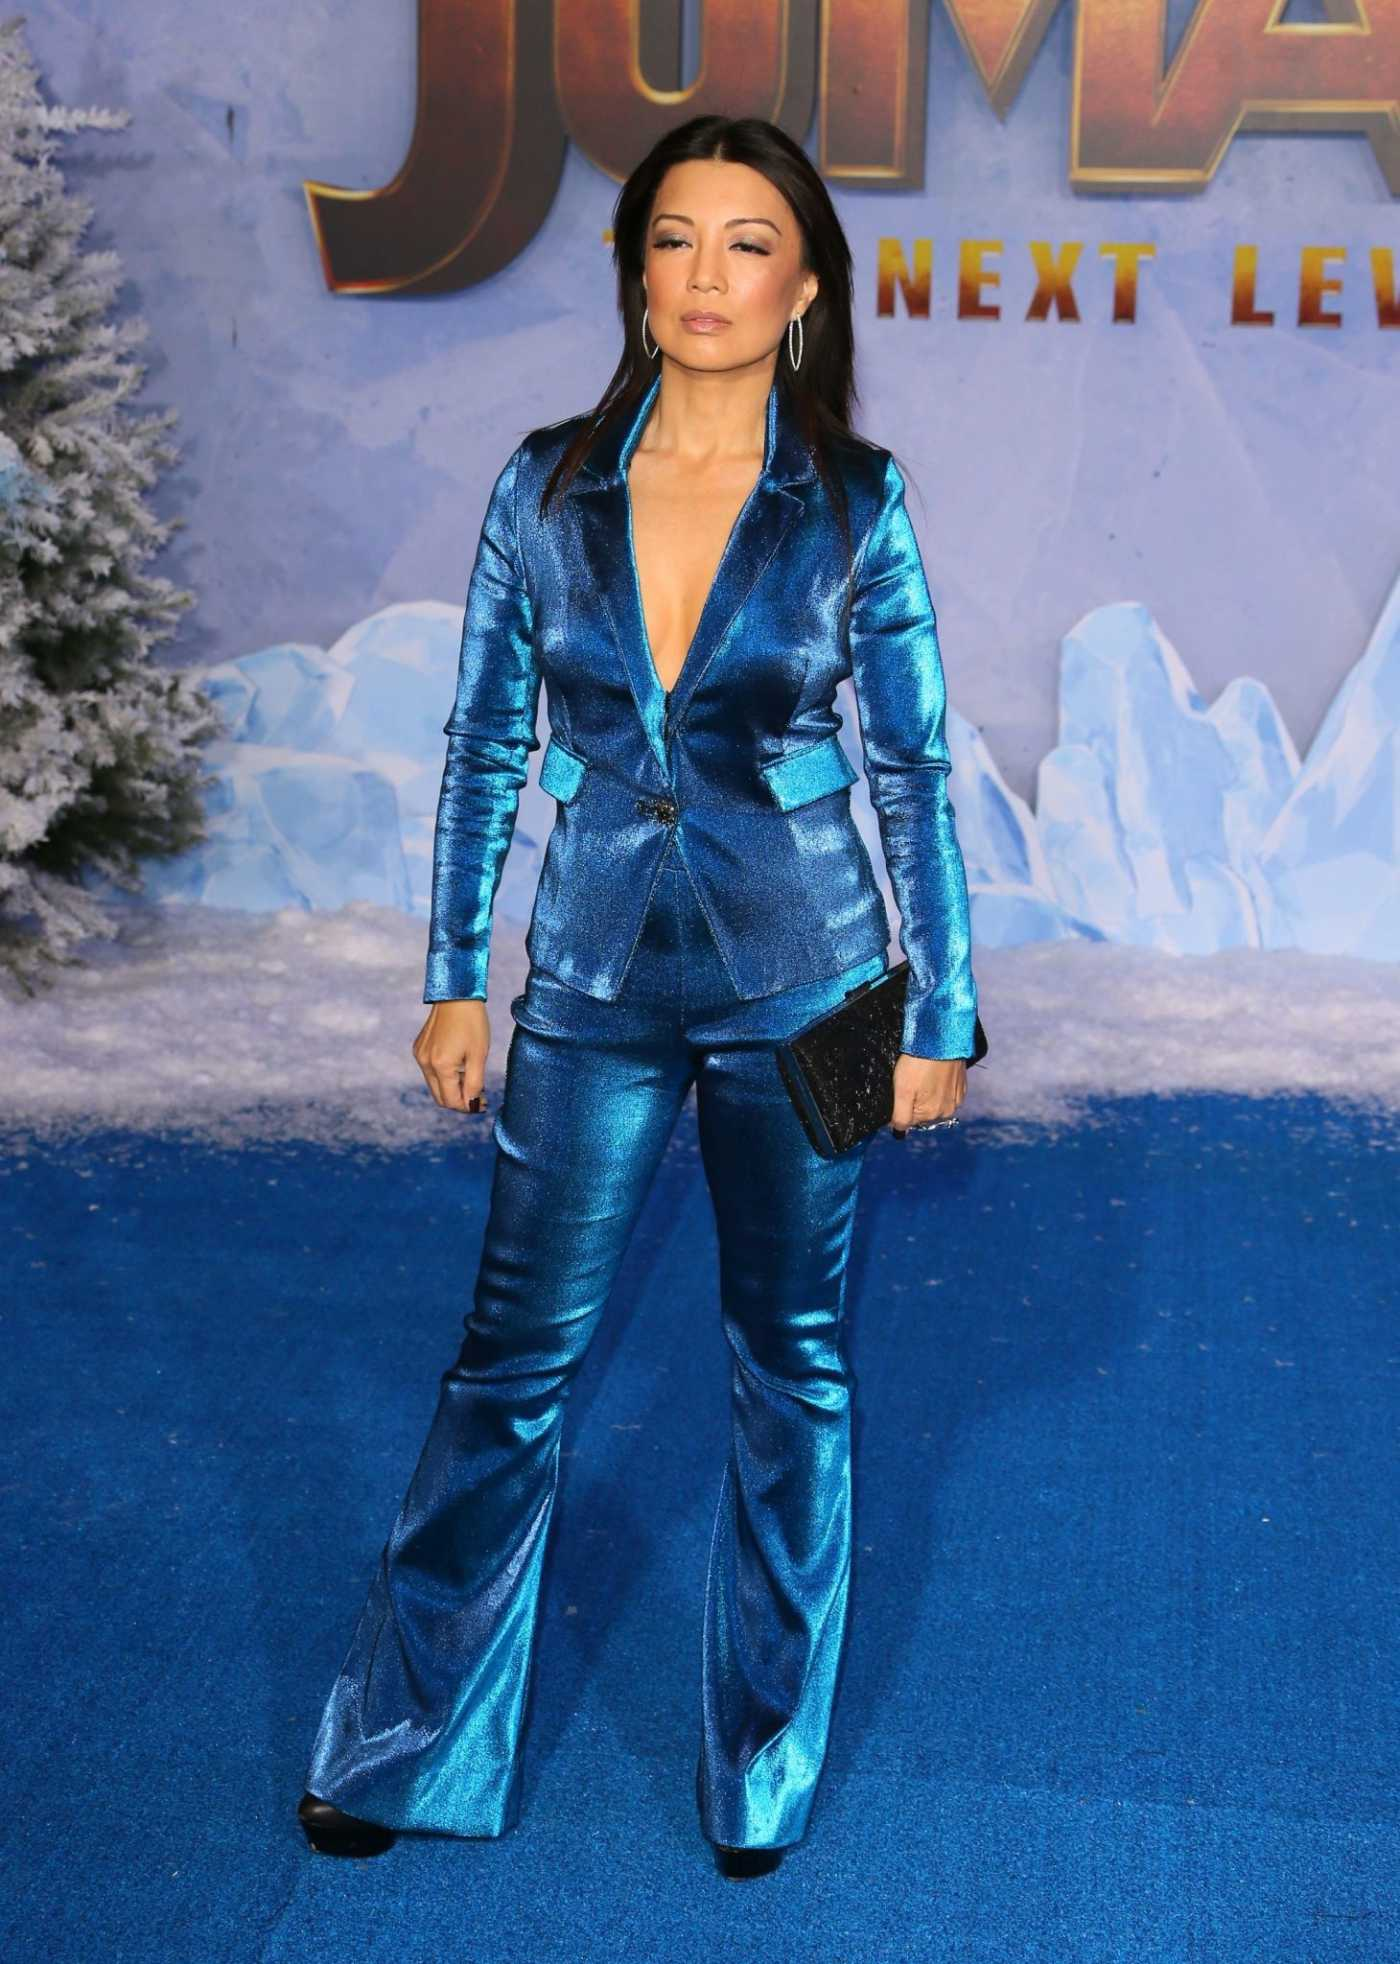 Ming-Na Wen Attends Jumanji: The Next Level Premiere at TCL Chinese Theatre in Hollywood 12/09/2019